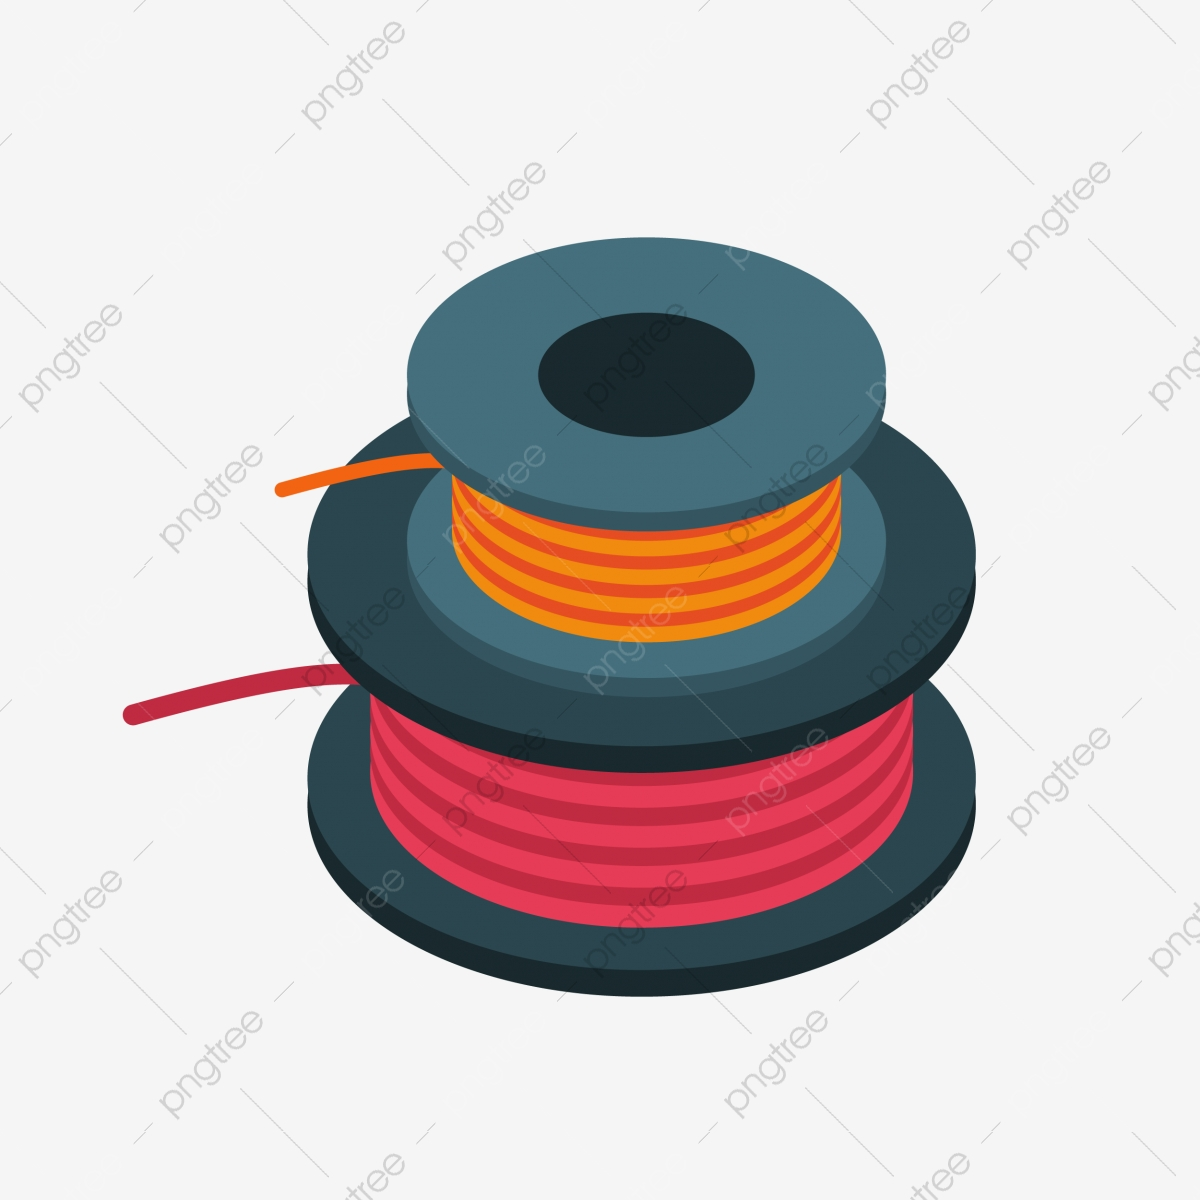 A Bundle Of Wires Cable Cable Material Cable Color Png And Vector With Transparent Background For Free Download